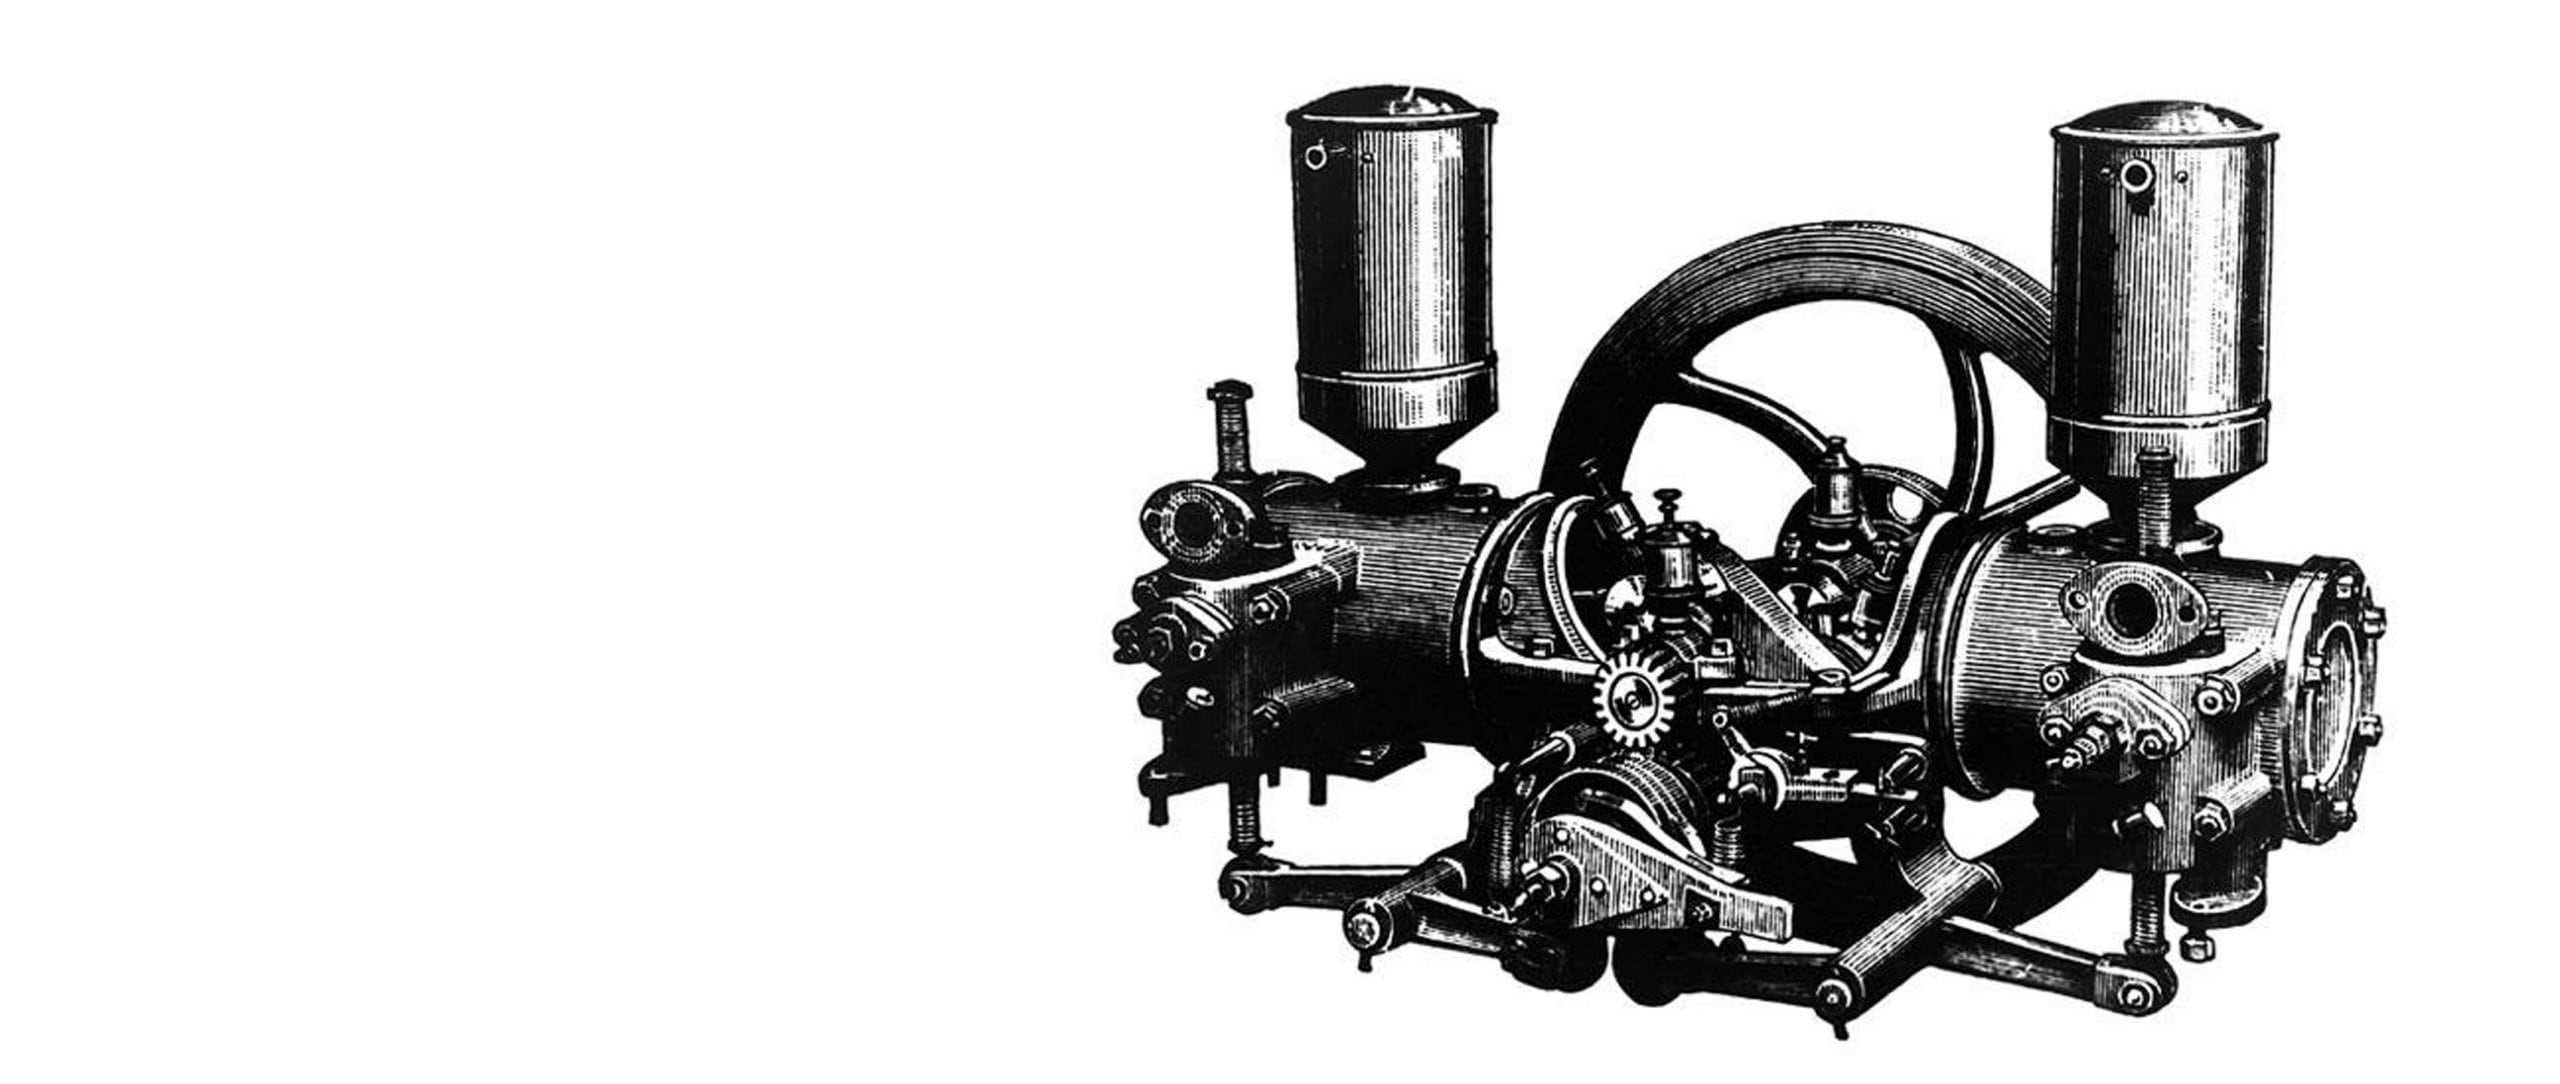 5 hp Benz two cylinder opposed-piston engine.